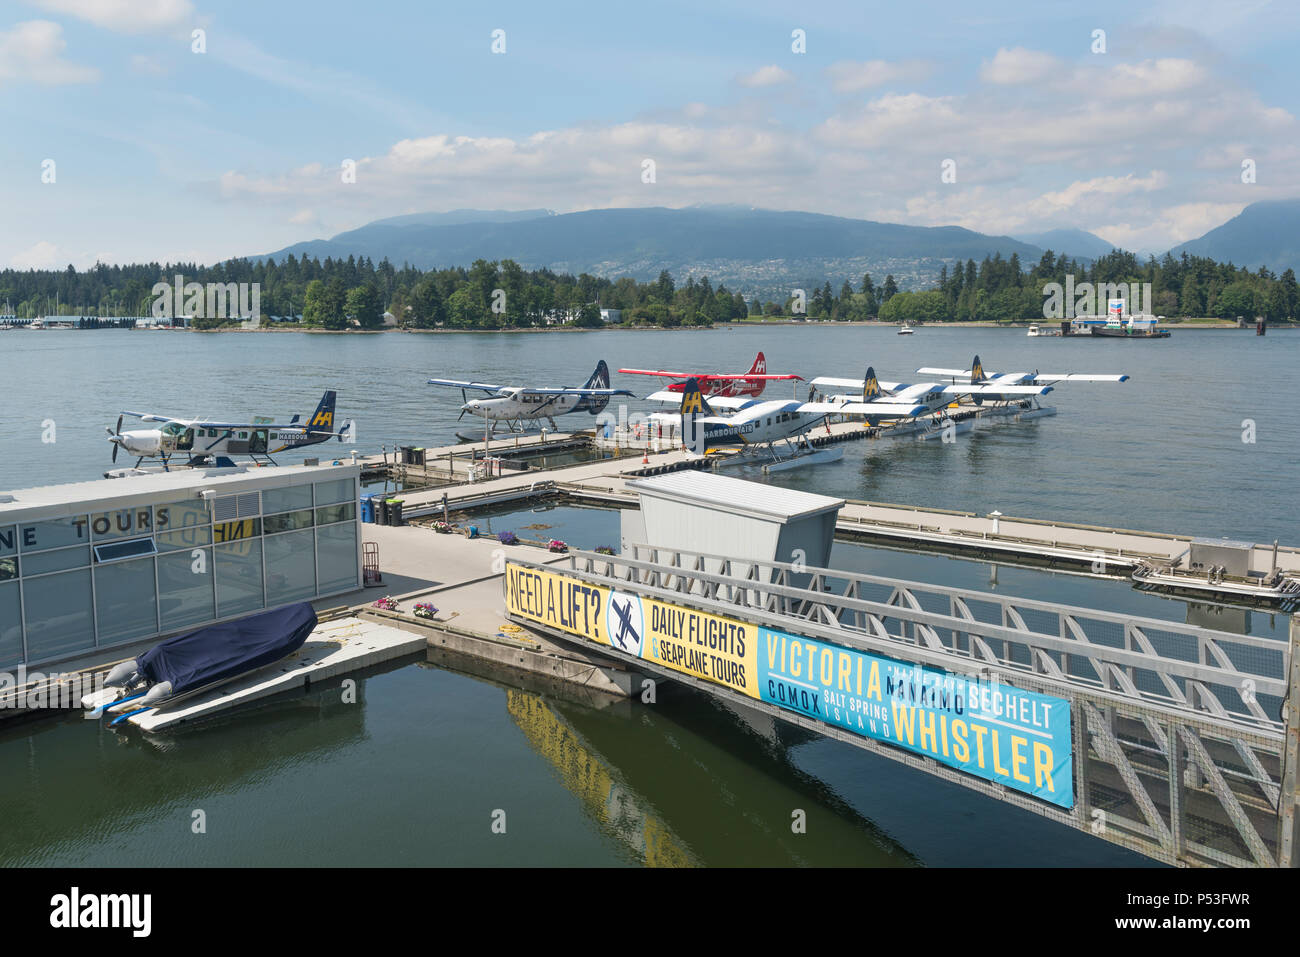 Seaplanes docked at Vancouver Harbour Flight Centre, a Seaplane Terminal located in Coal Harbour. - Stock Image